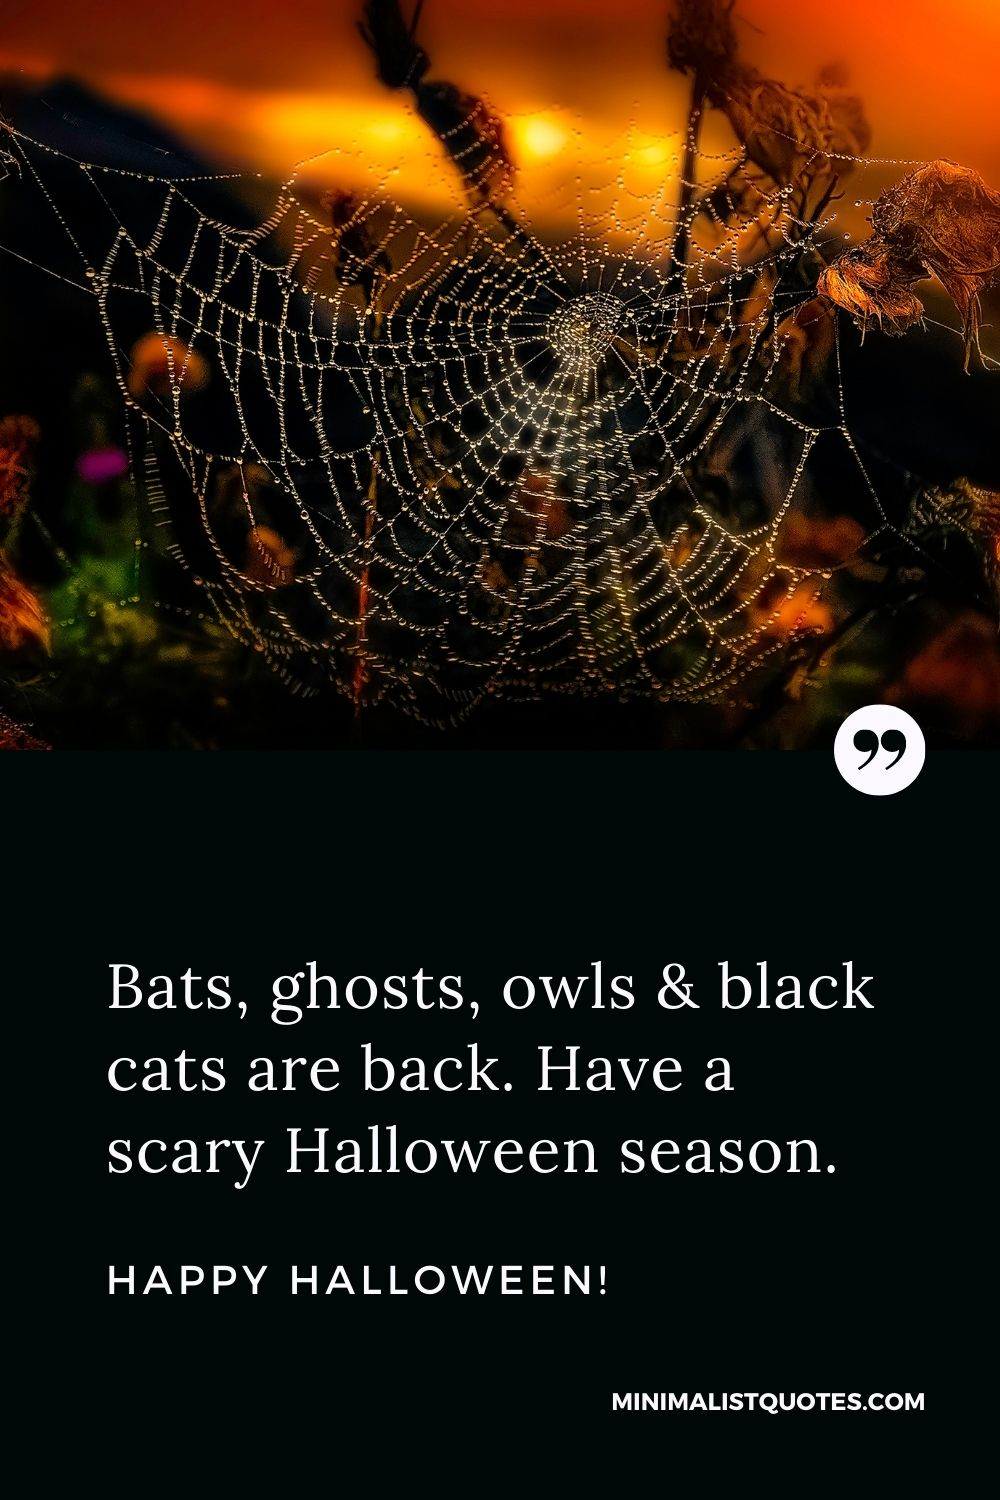 Happy Halloween Wishes- Bats, ghosts, owls & black cats are back. Have a scary Halloween season.